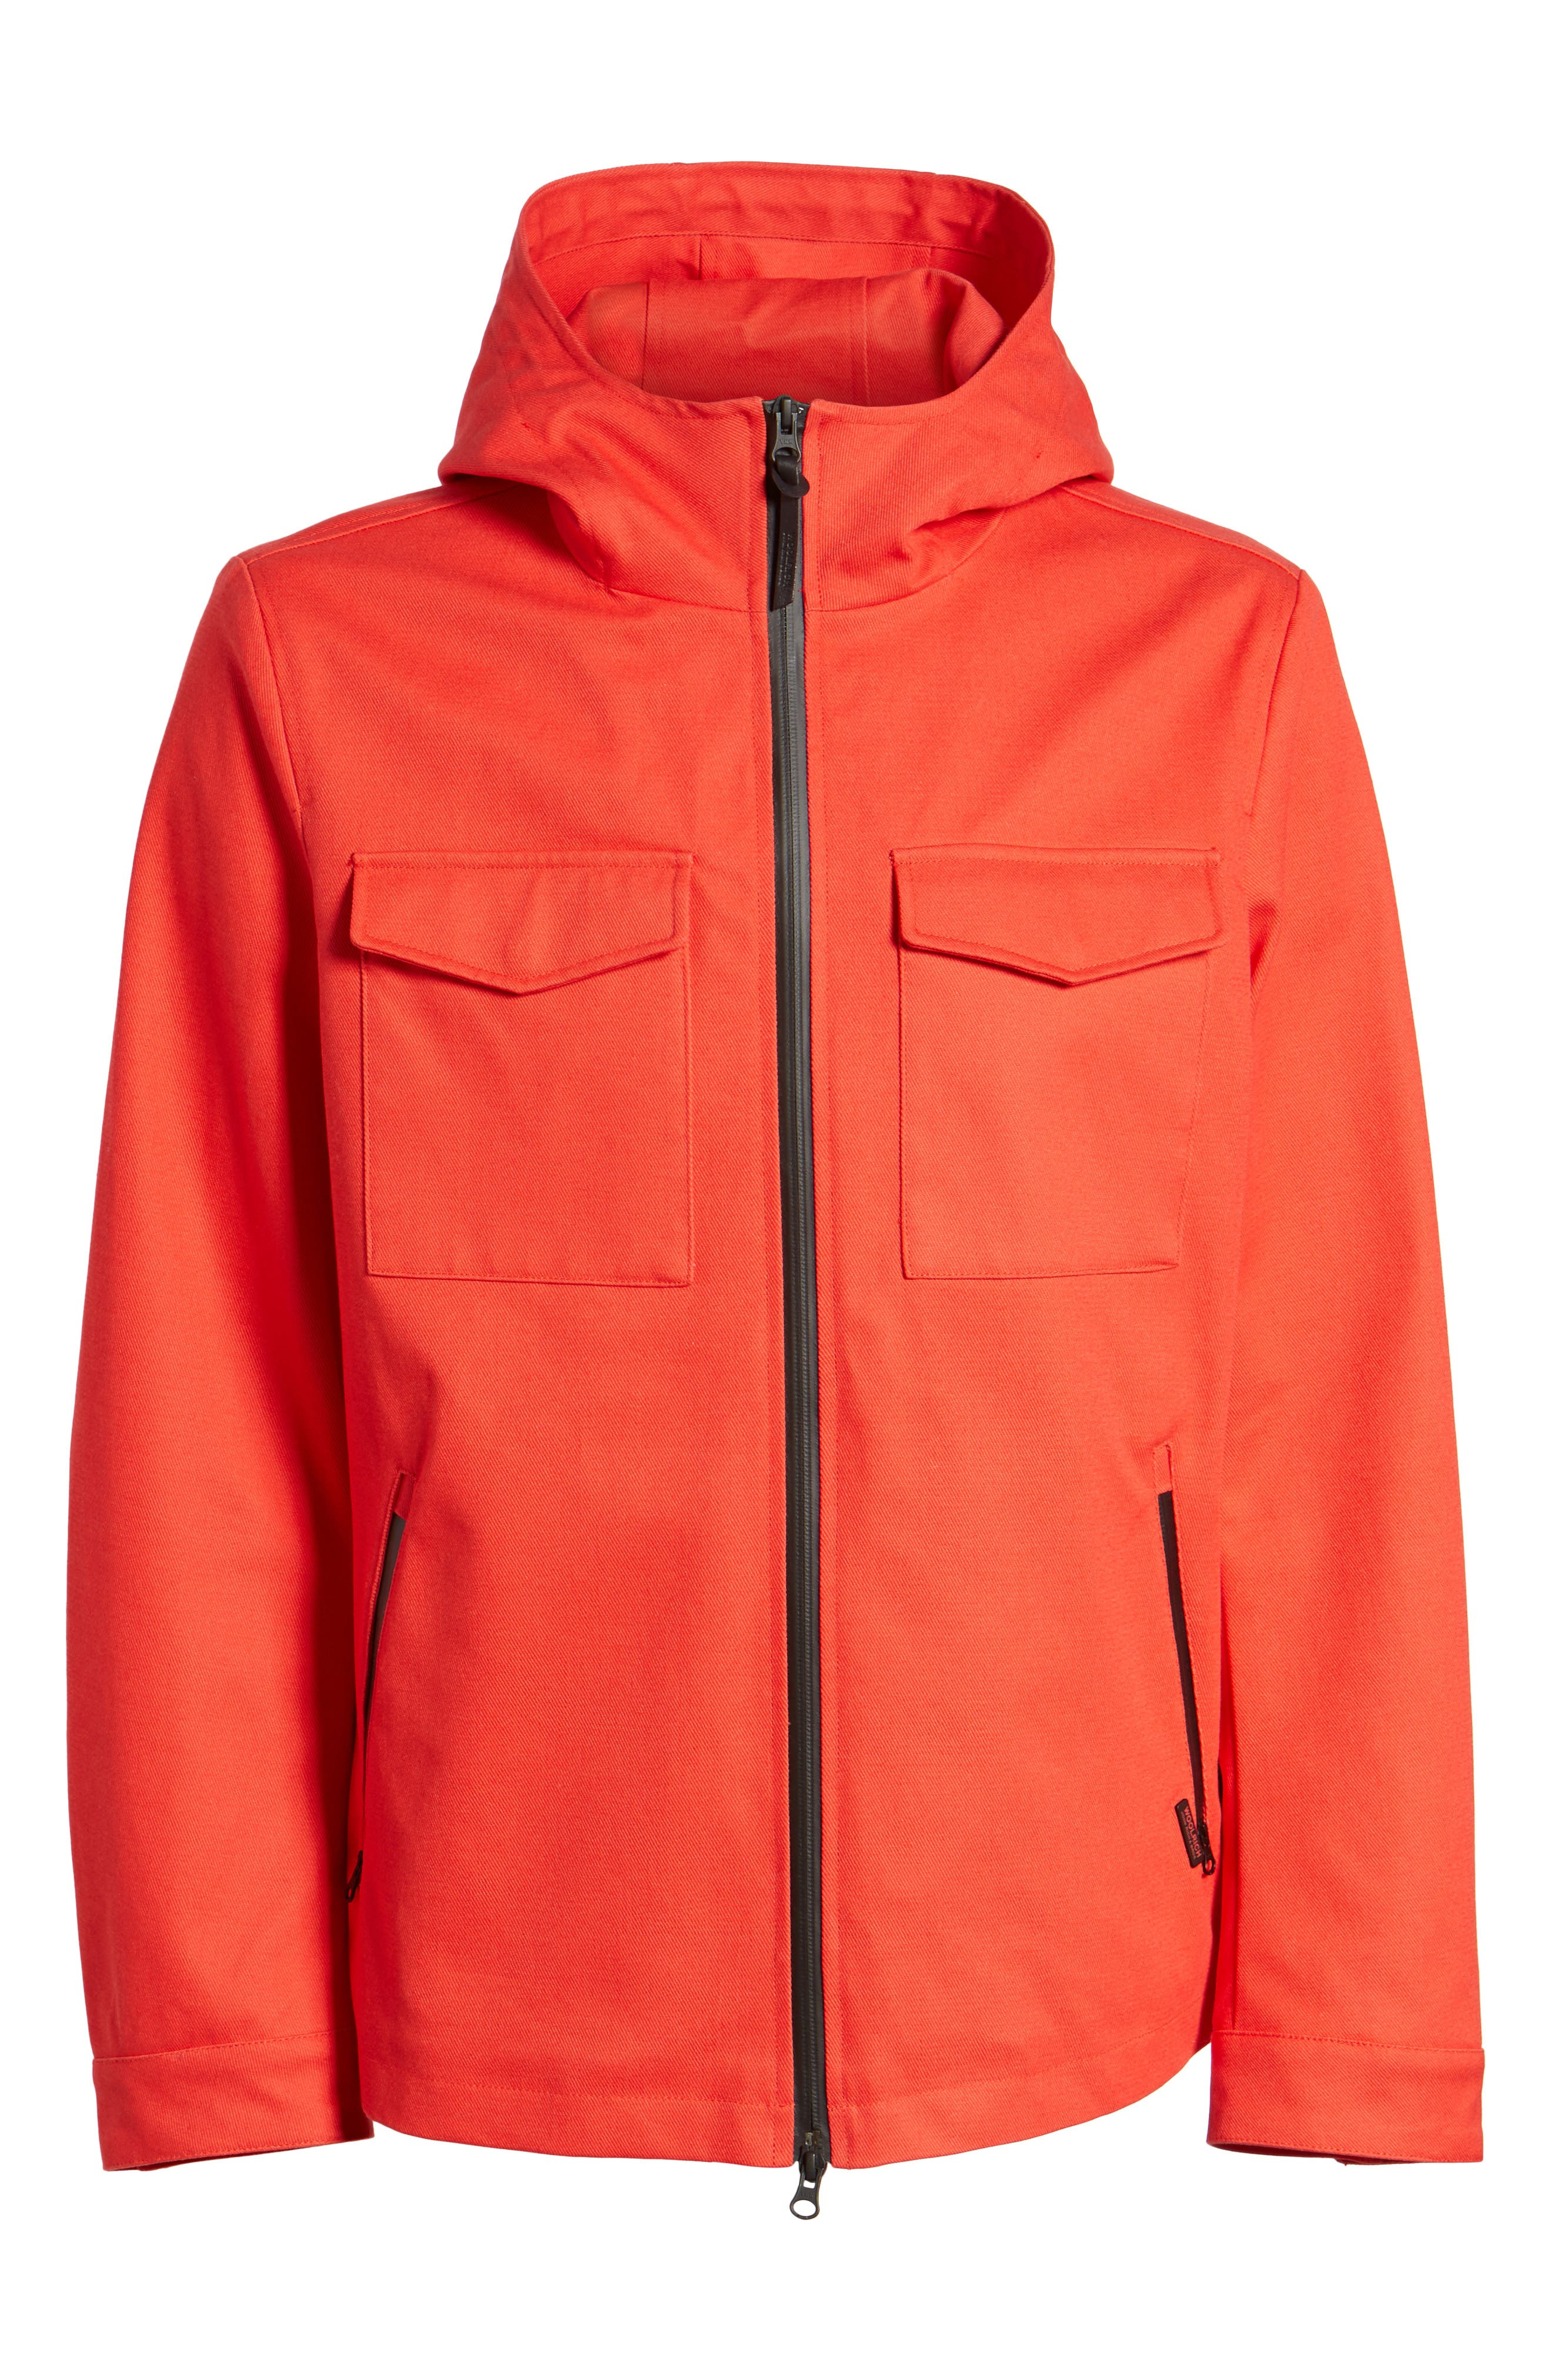 & Bros. Crew Field Jacket,                             Alternate thumbnail 6, color,                             Aurora Red